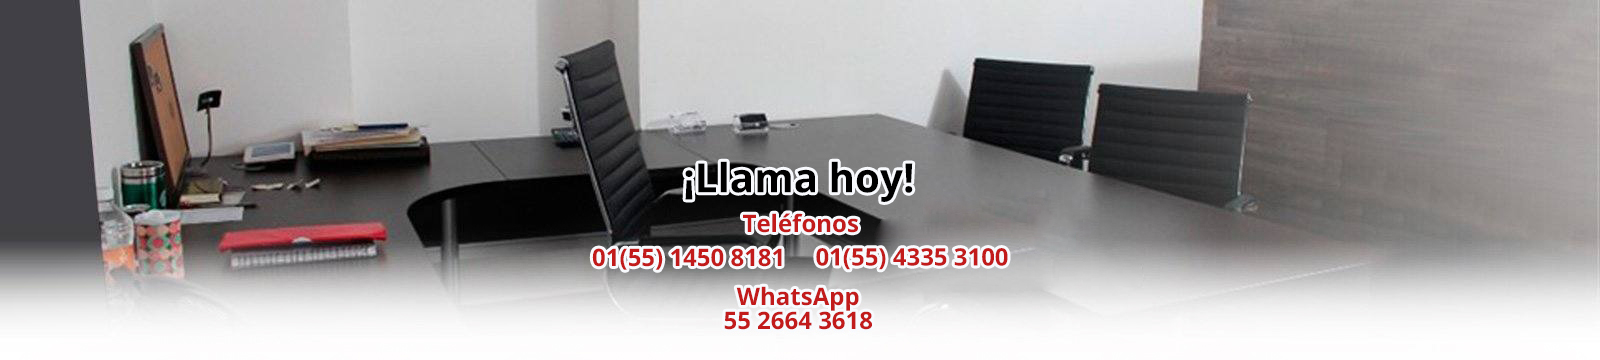 Office polanco